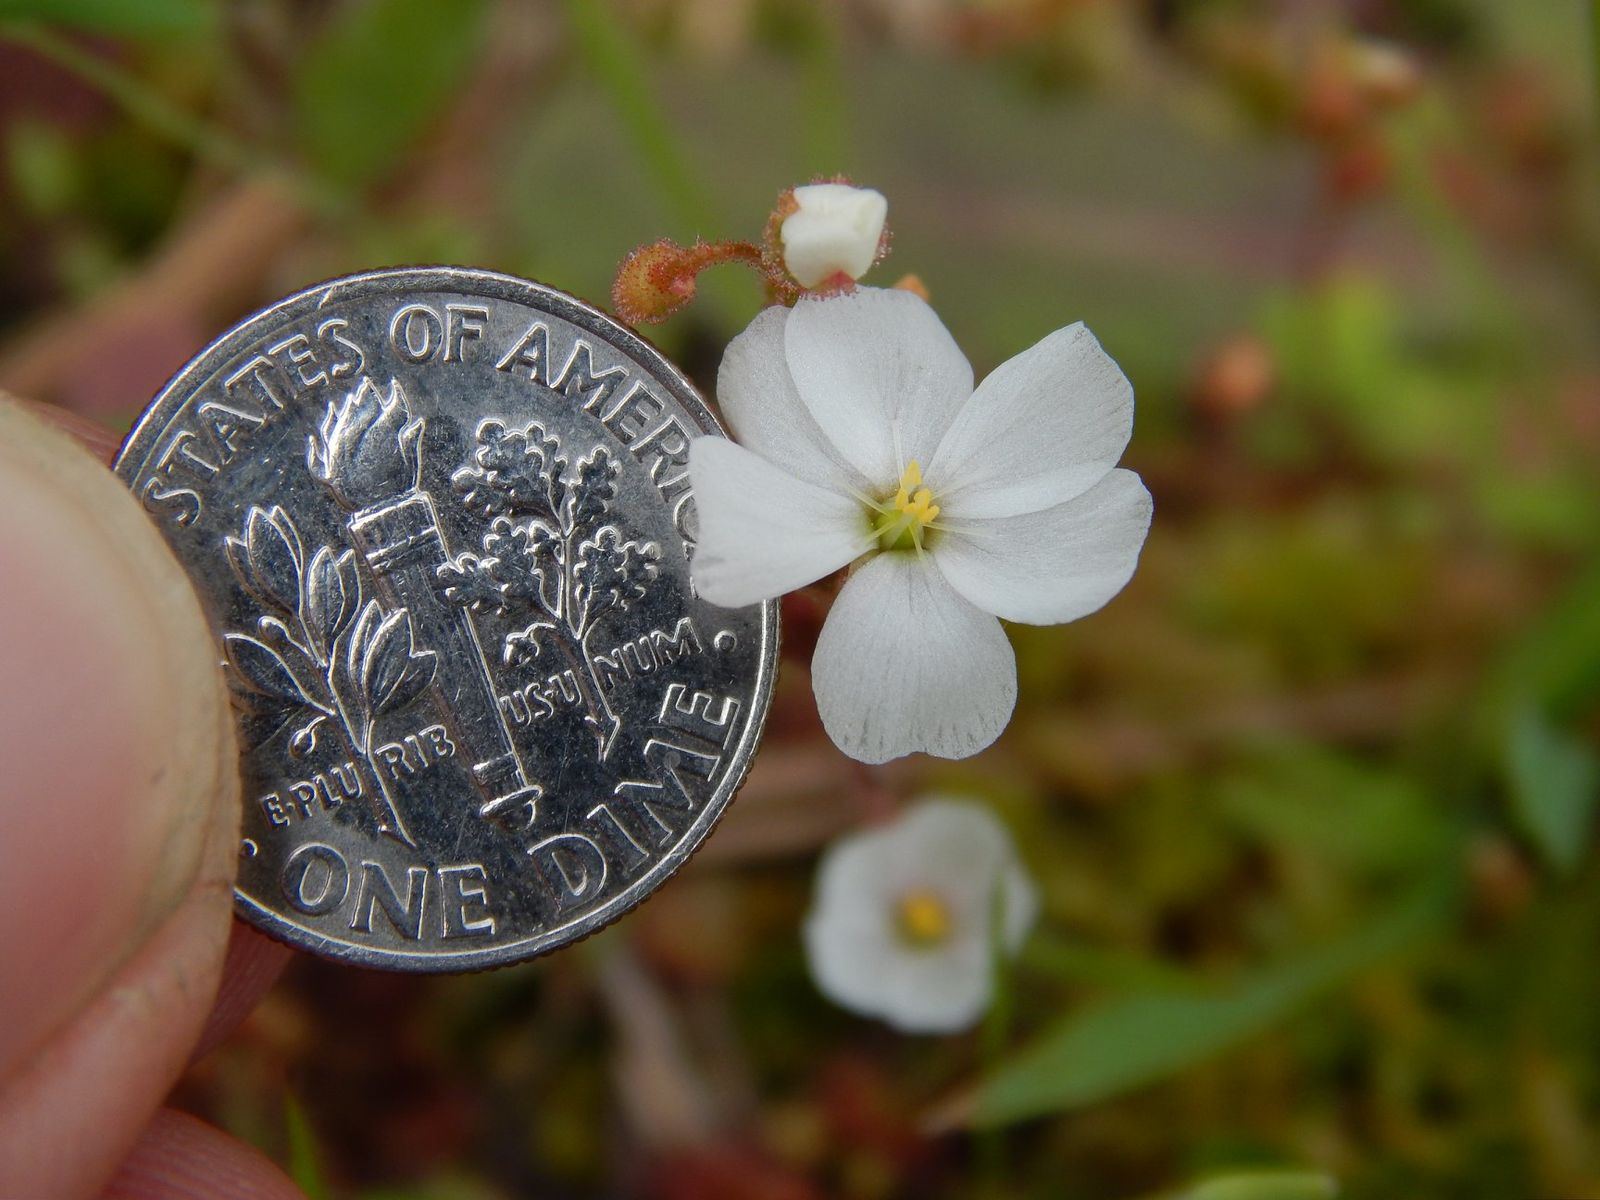 Dwarf sundew in comparison to a dime (Courtesy of Maryland Department of Natural Resources)